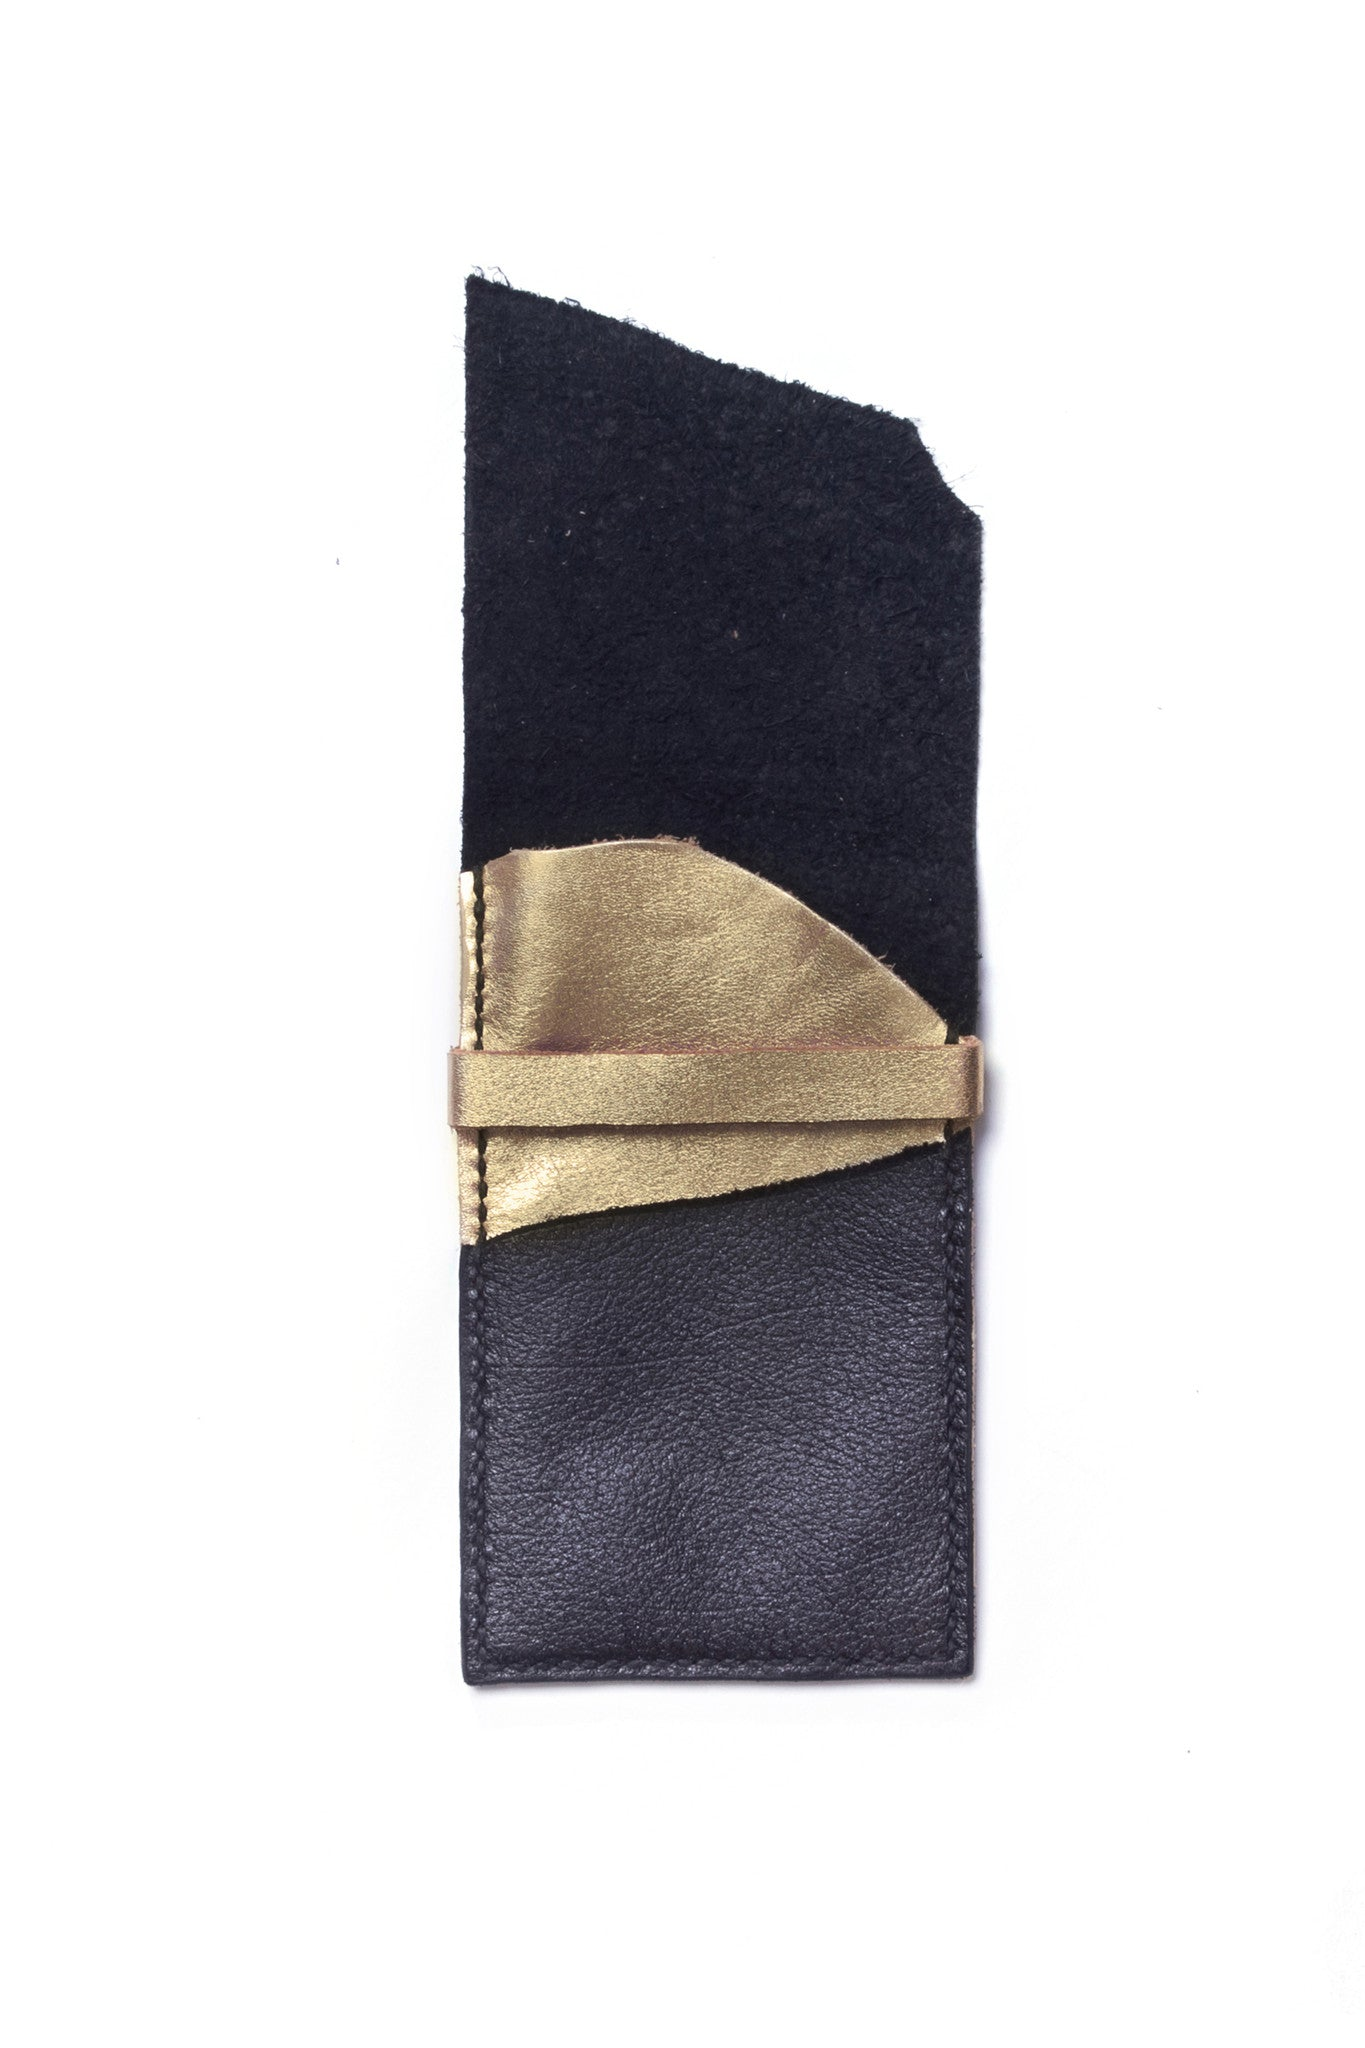 Stella Tricolored Black Metallic Blue Gold Leather Raw iPhone Sleeve Open View by Liana Rosa